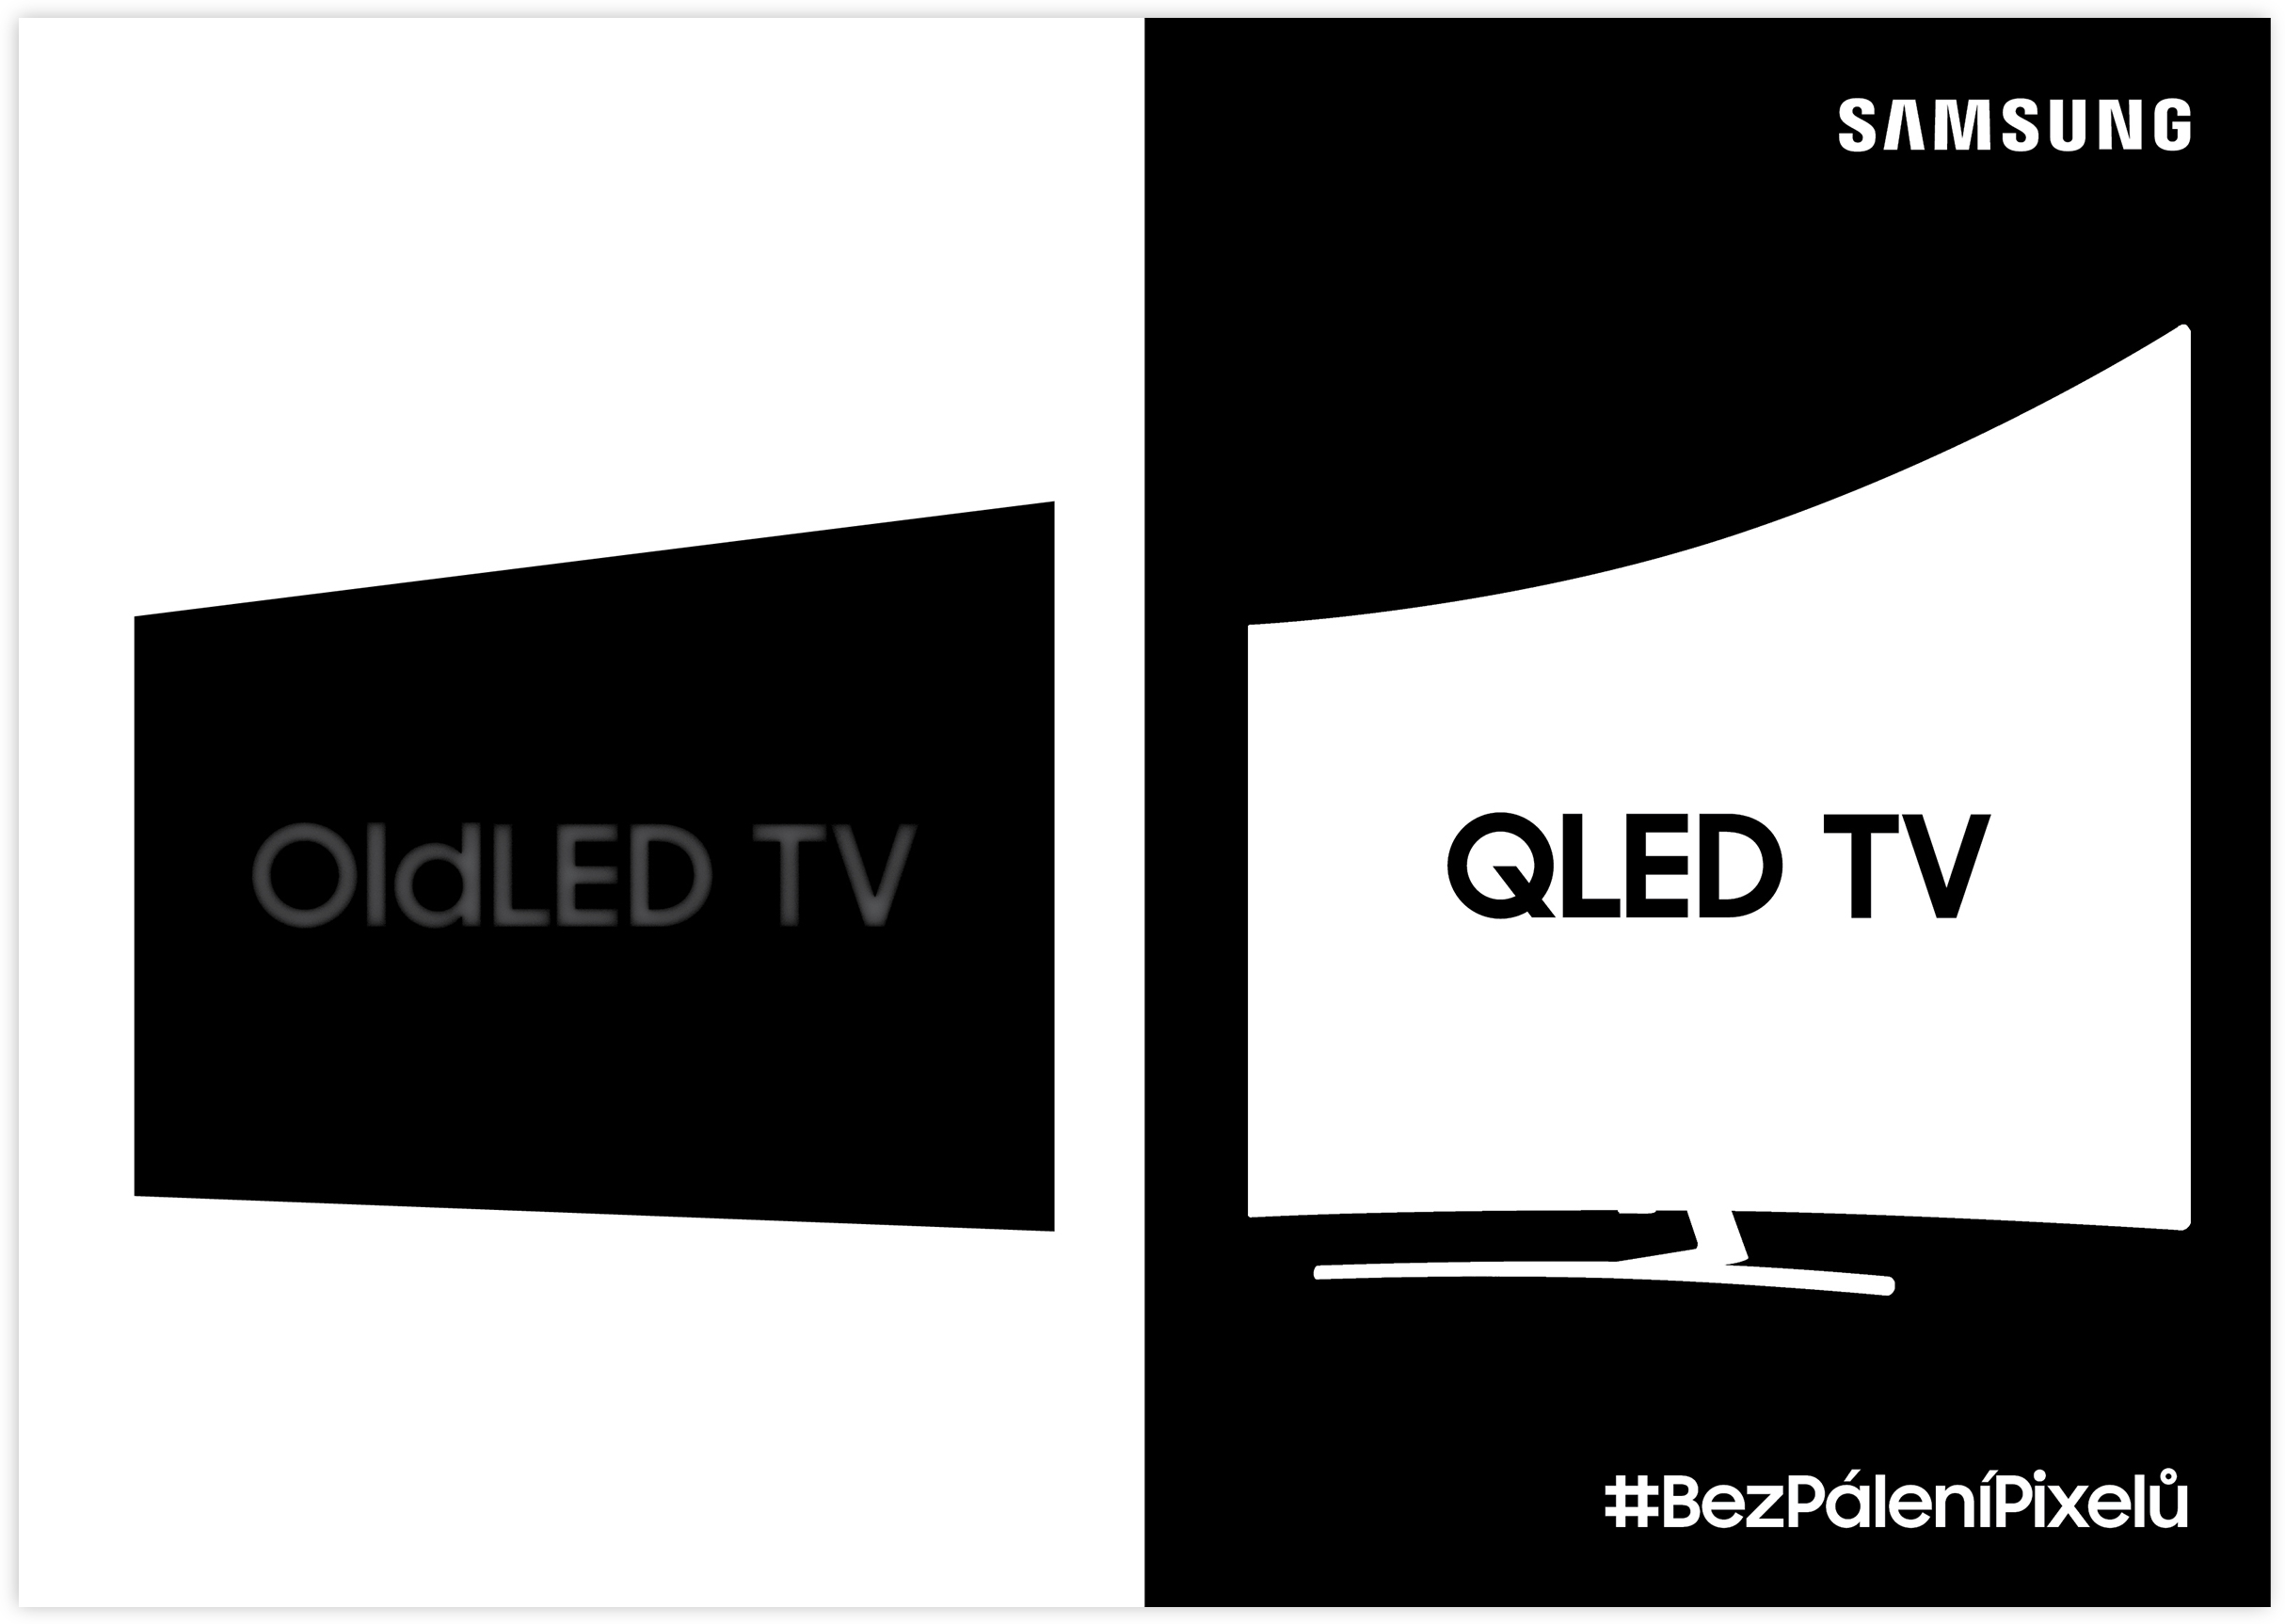 KV 3 | The TVs displaying their respective logos in the long term. An OldLED TV with its respective logo burnt into the screen, and a QLED TV displaying a crisp logo.